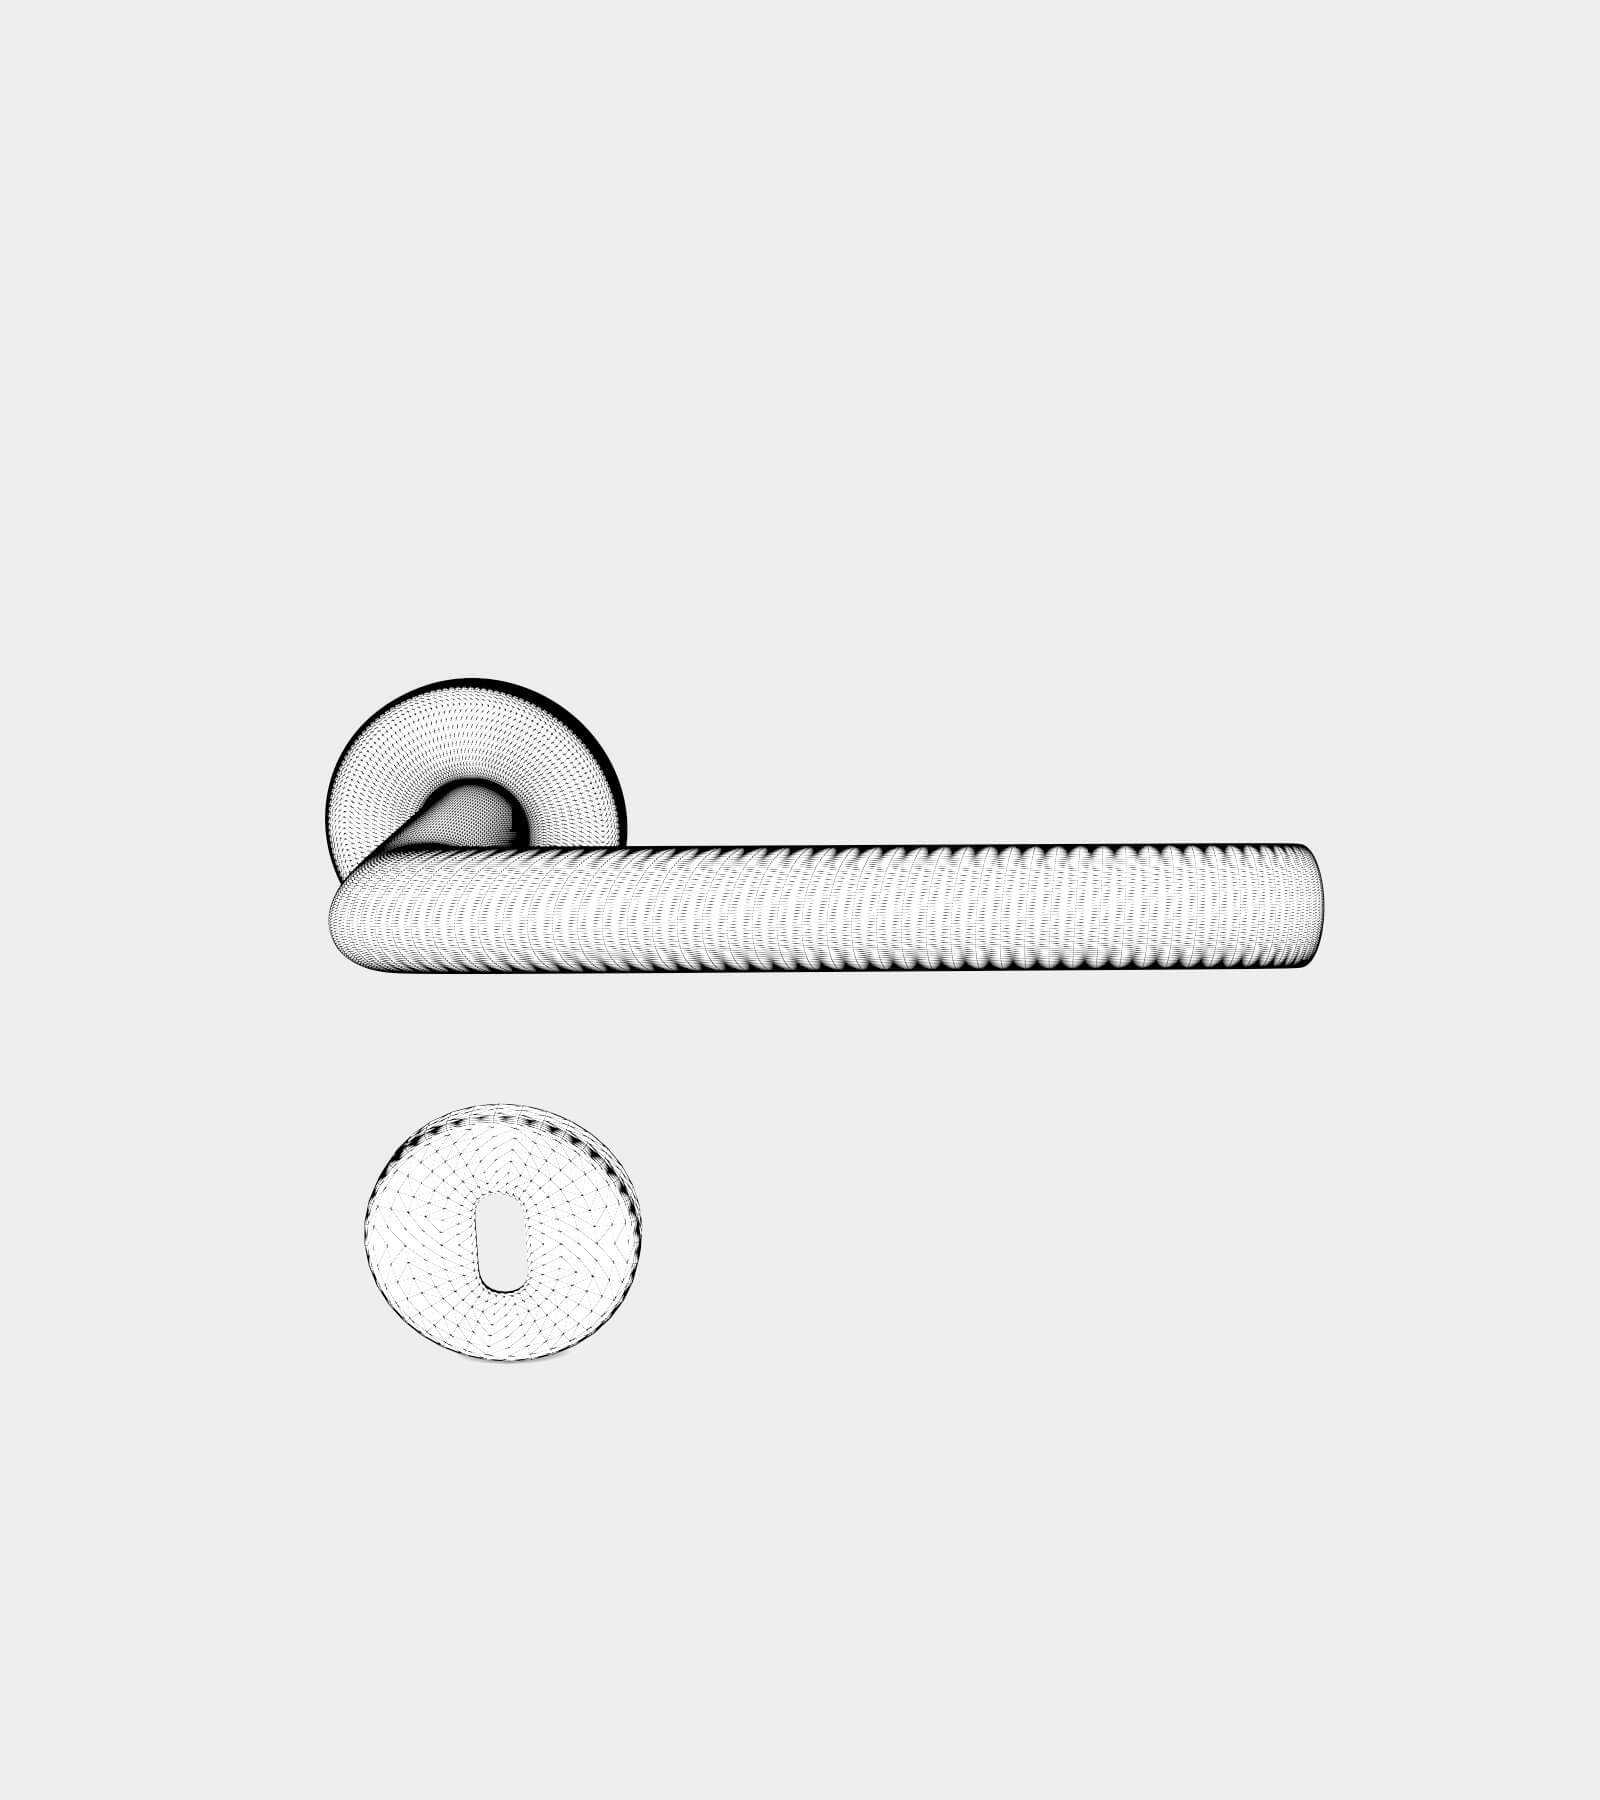 Round door handle-wire-2 3D Model